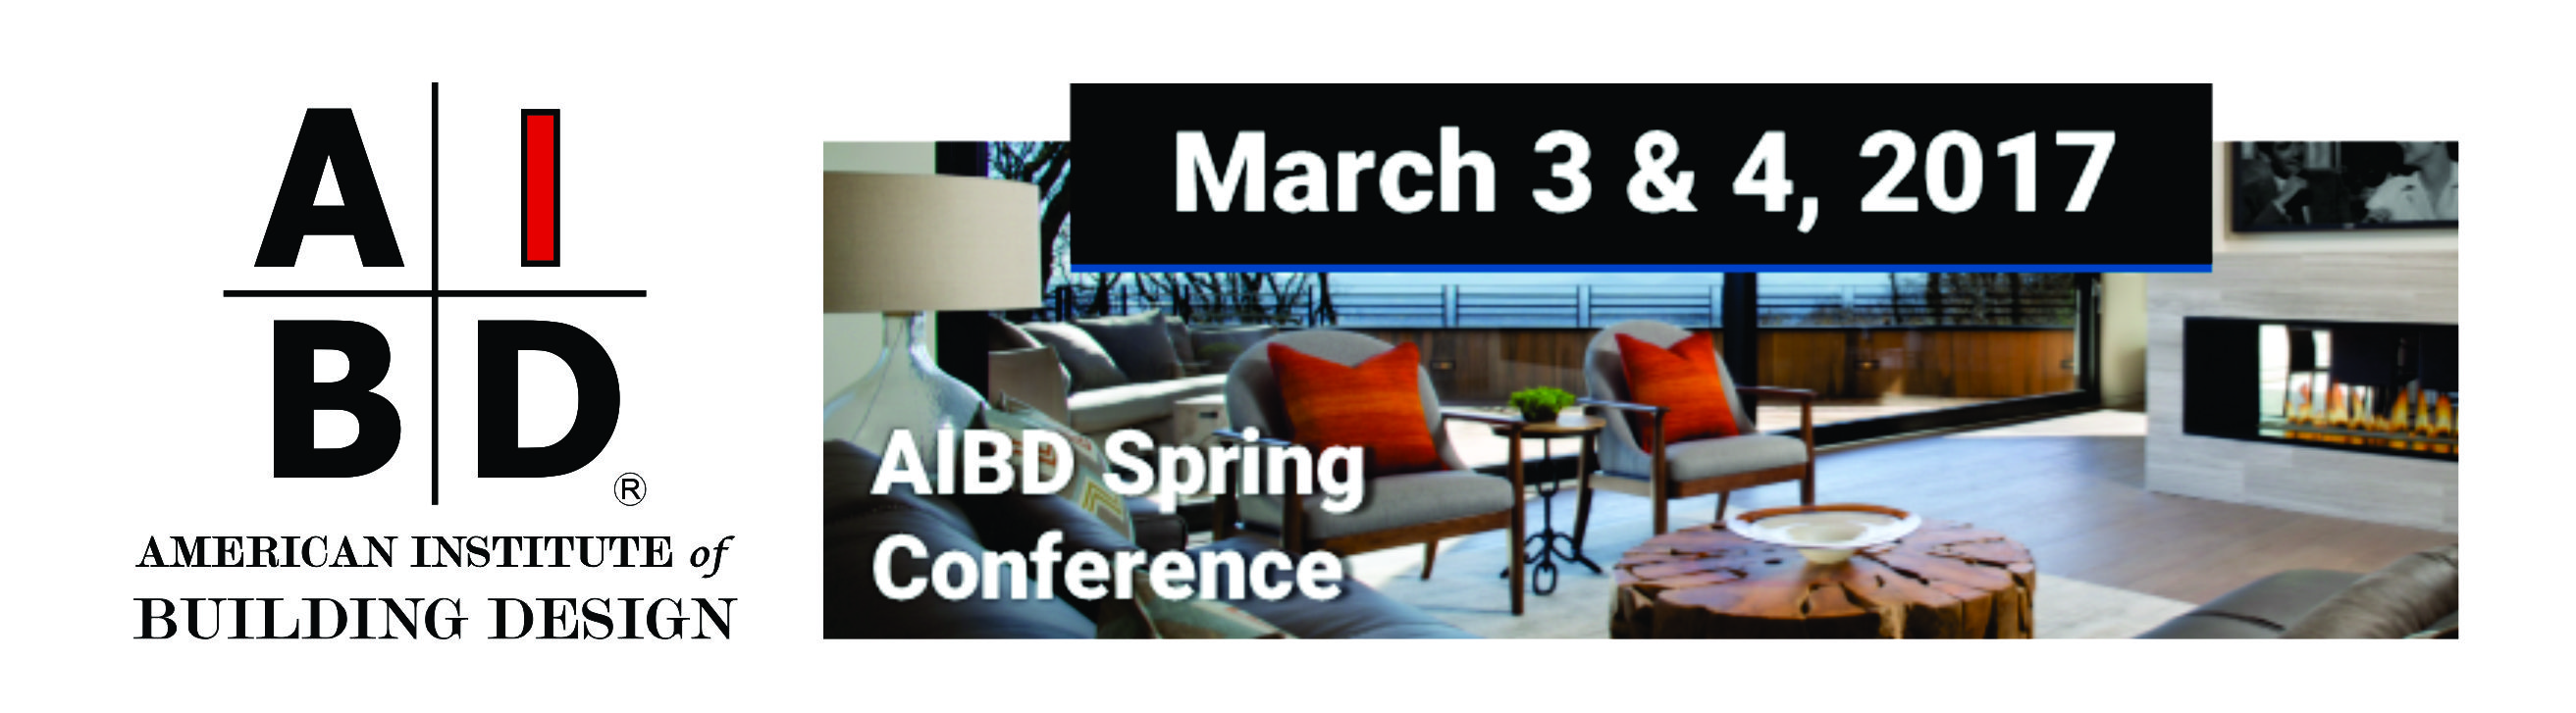 AIBD-spring-conference-2017